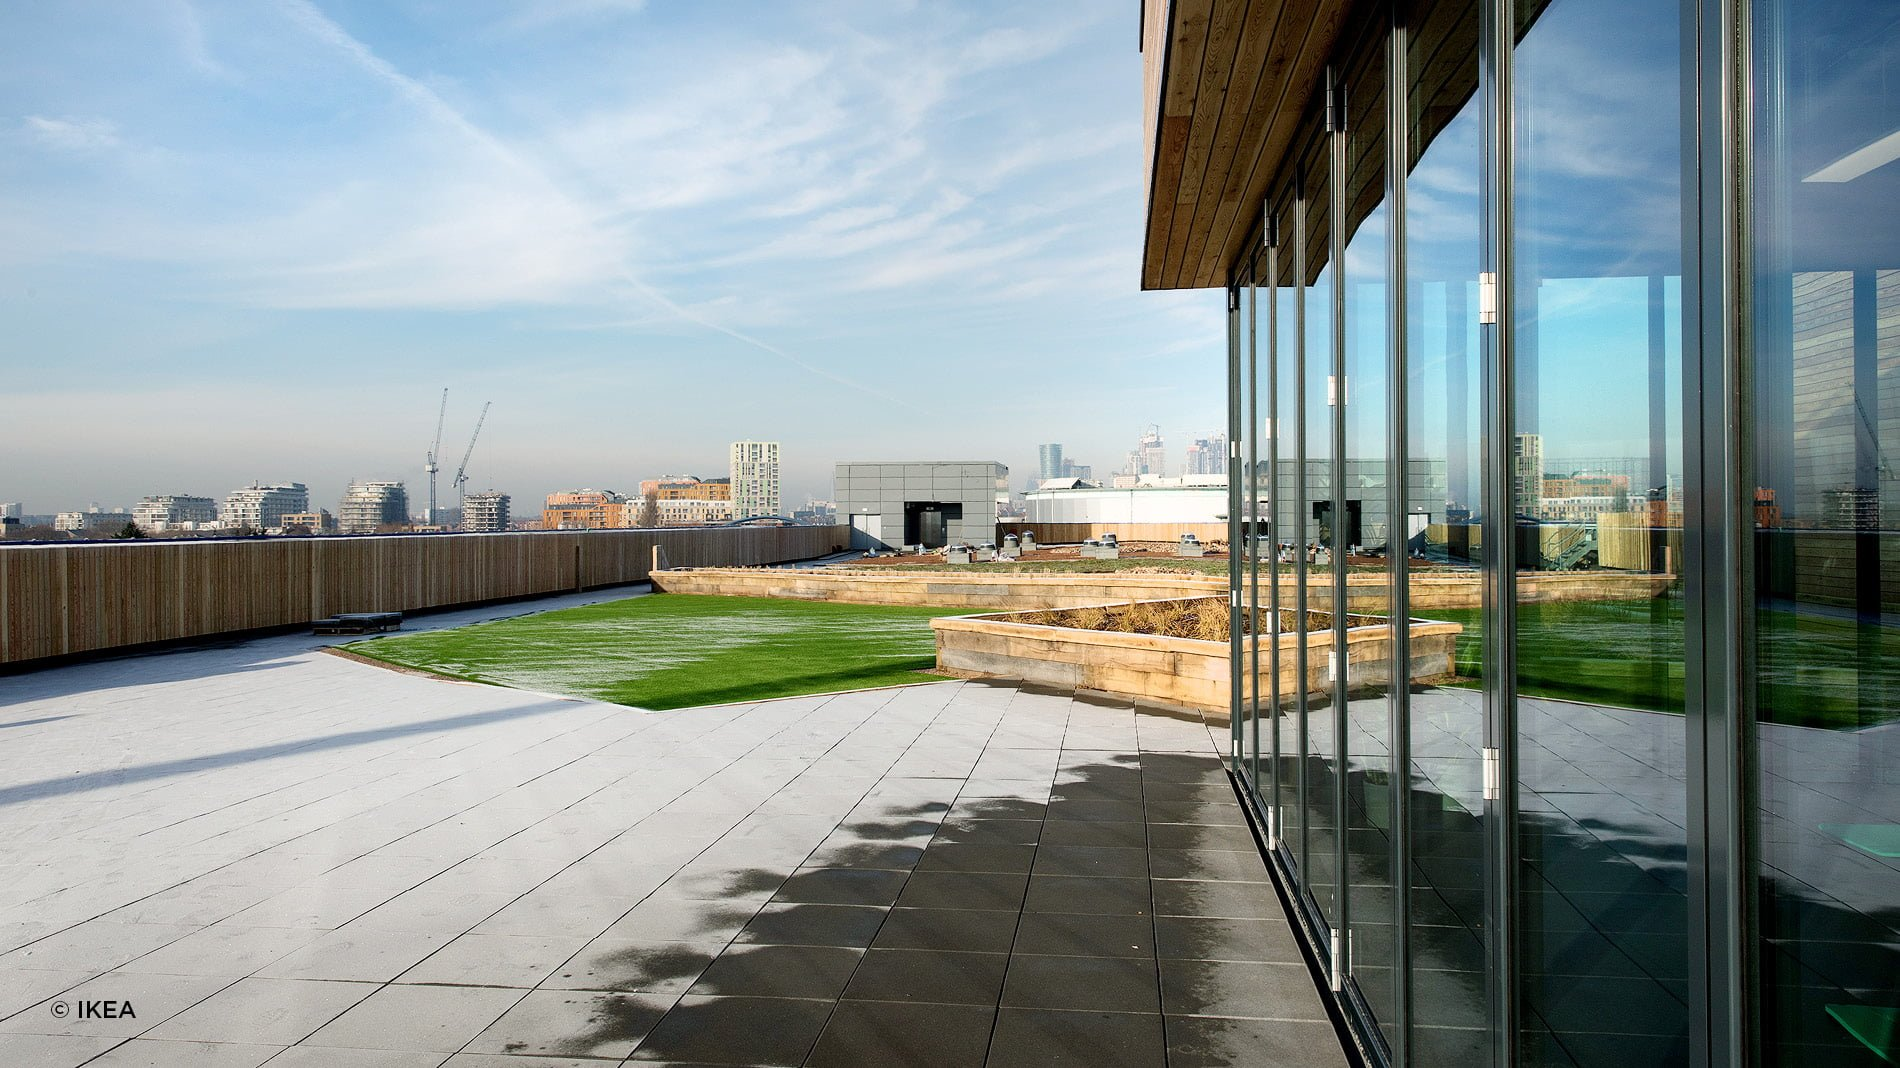 Exterior of IKEA Greenwich and London skyline. IKEA's most sustainable store in the UK